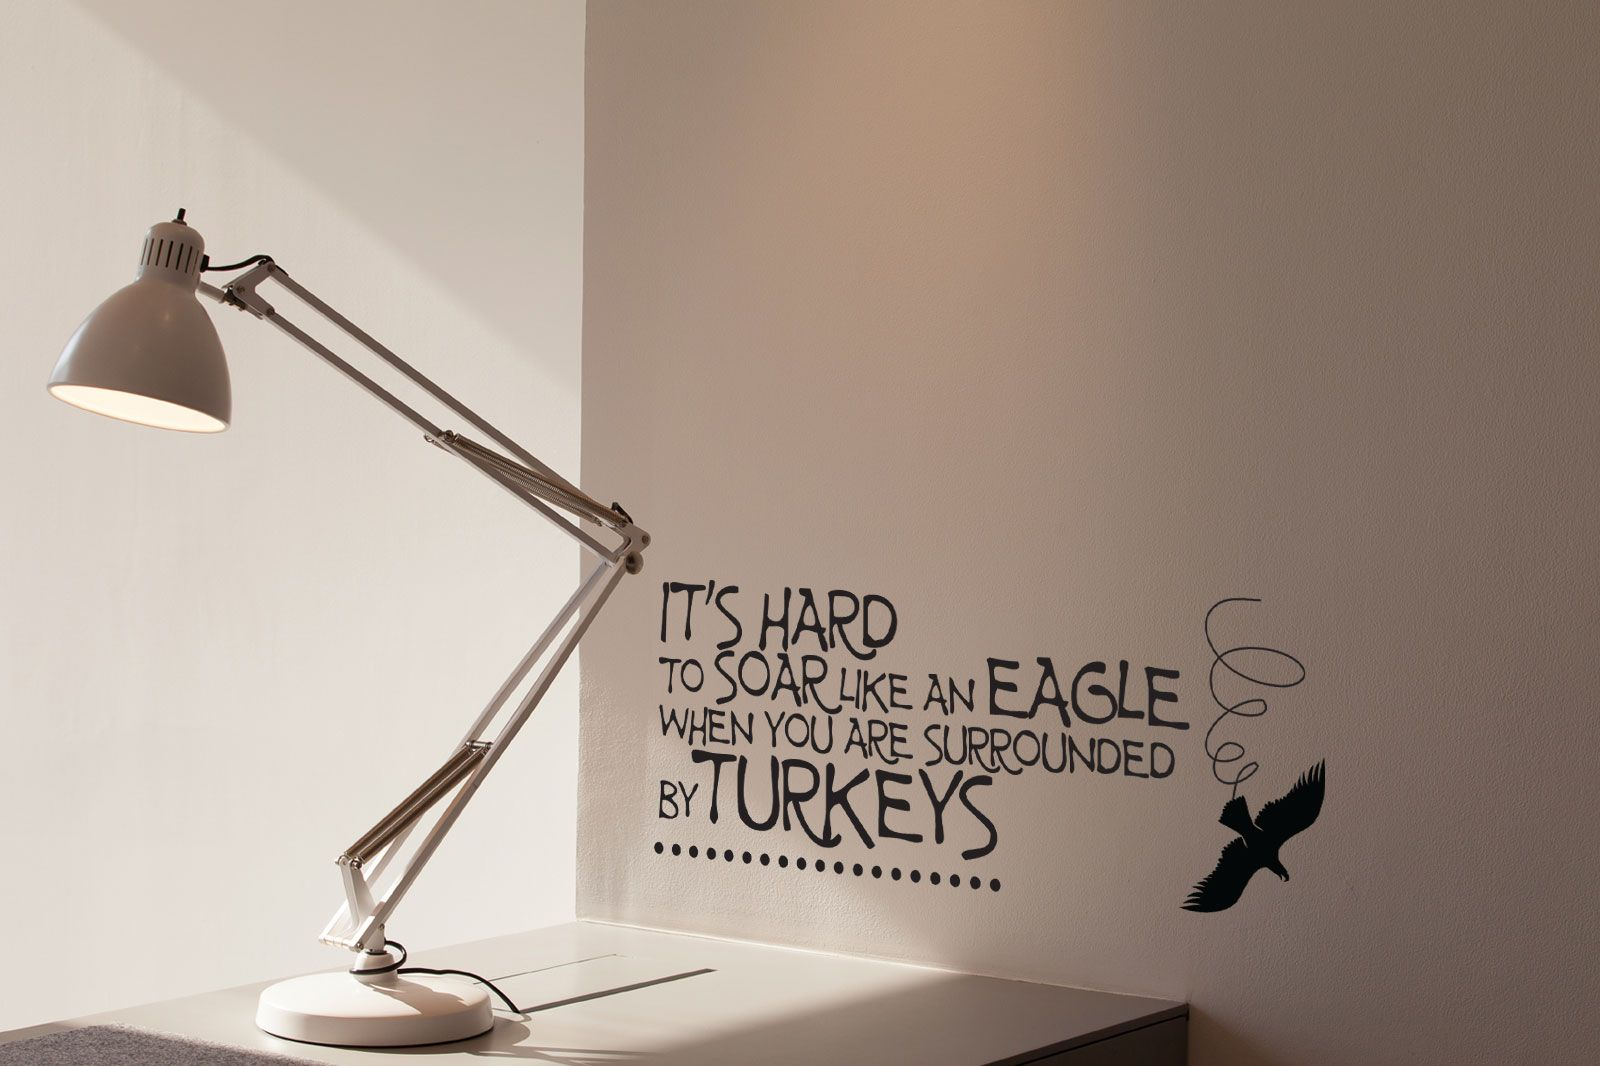 Soaring Quotes Its Hard To Soar Like An Eagle When You Are